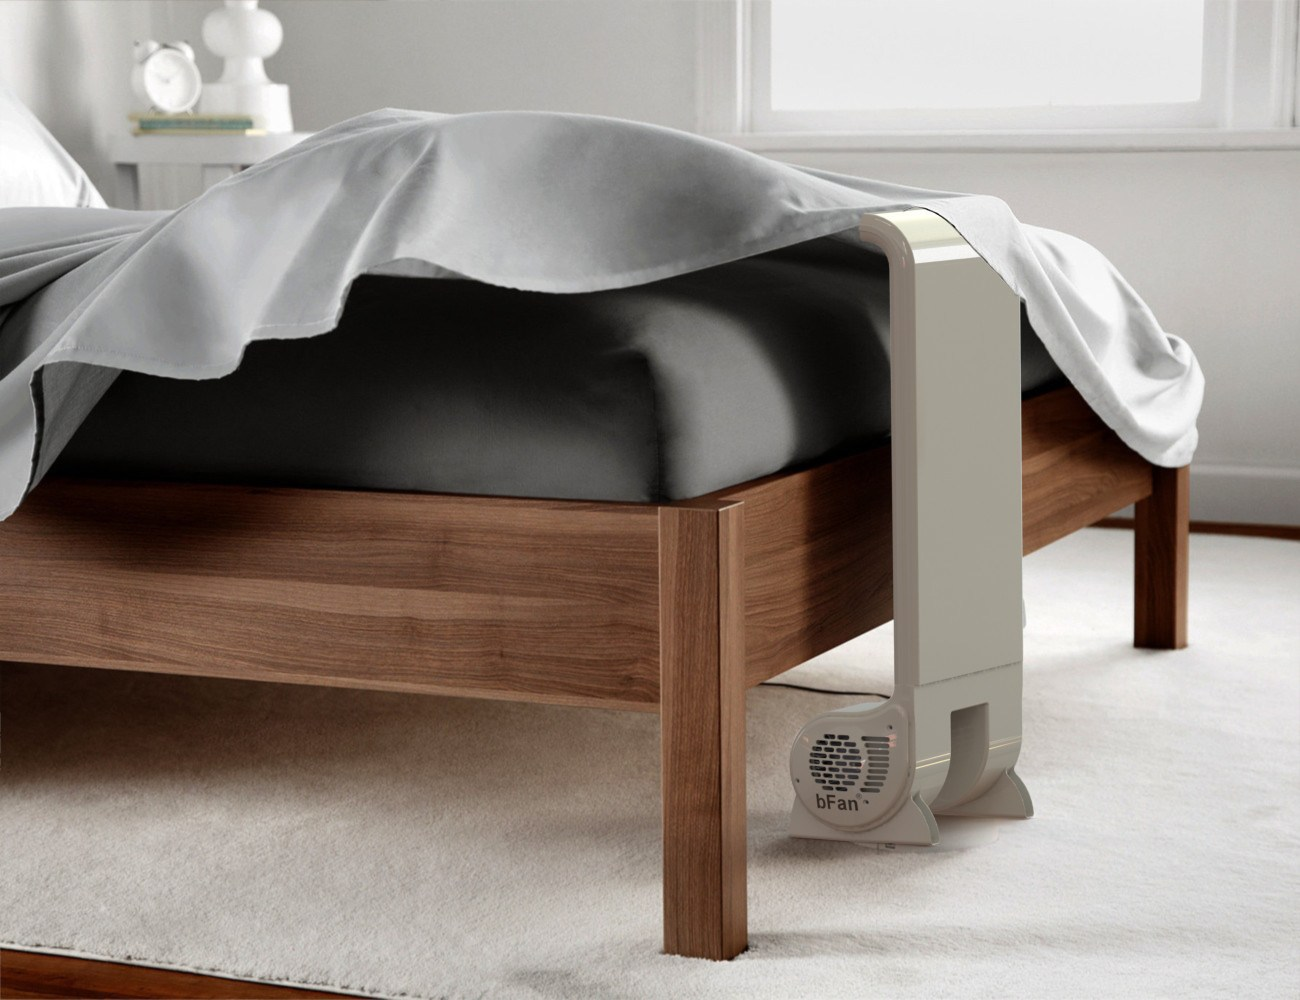 bFan Air Cooling Bed Fan